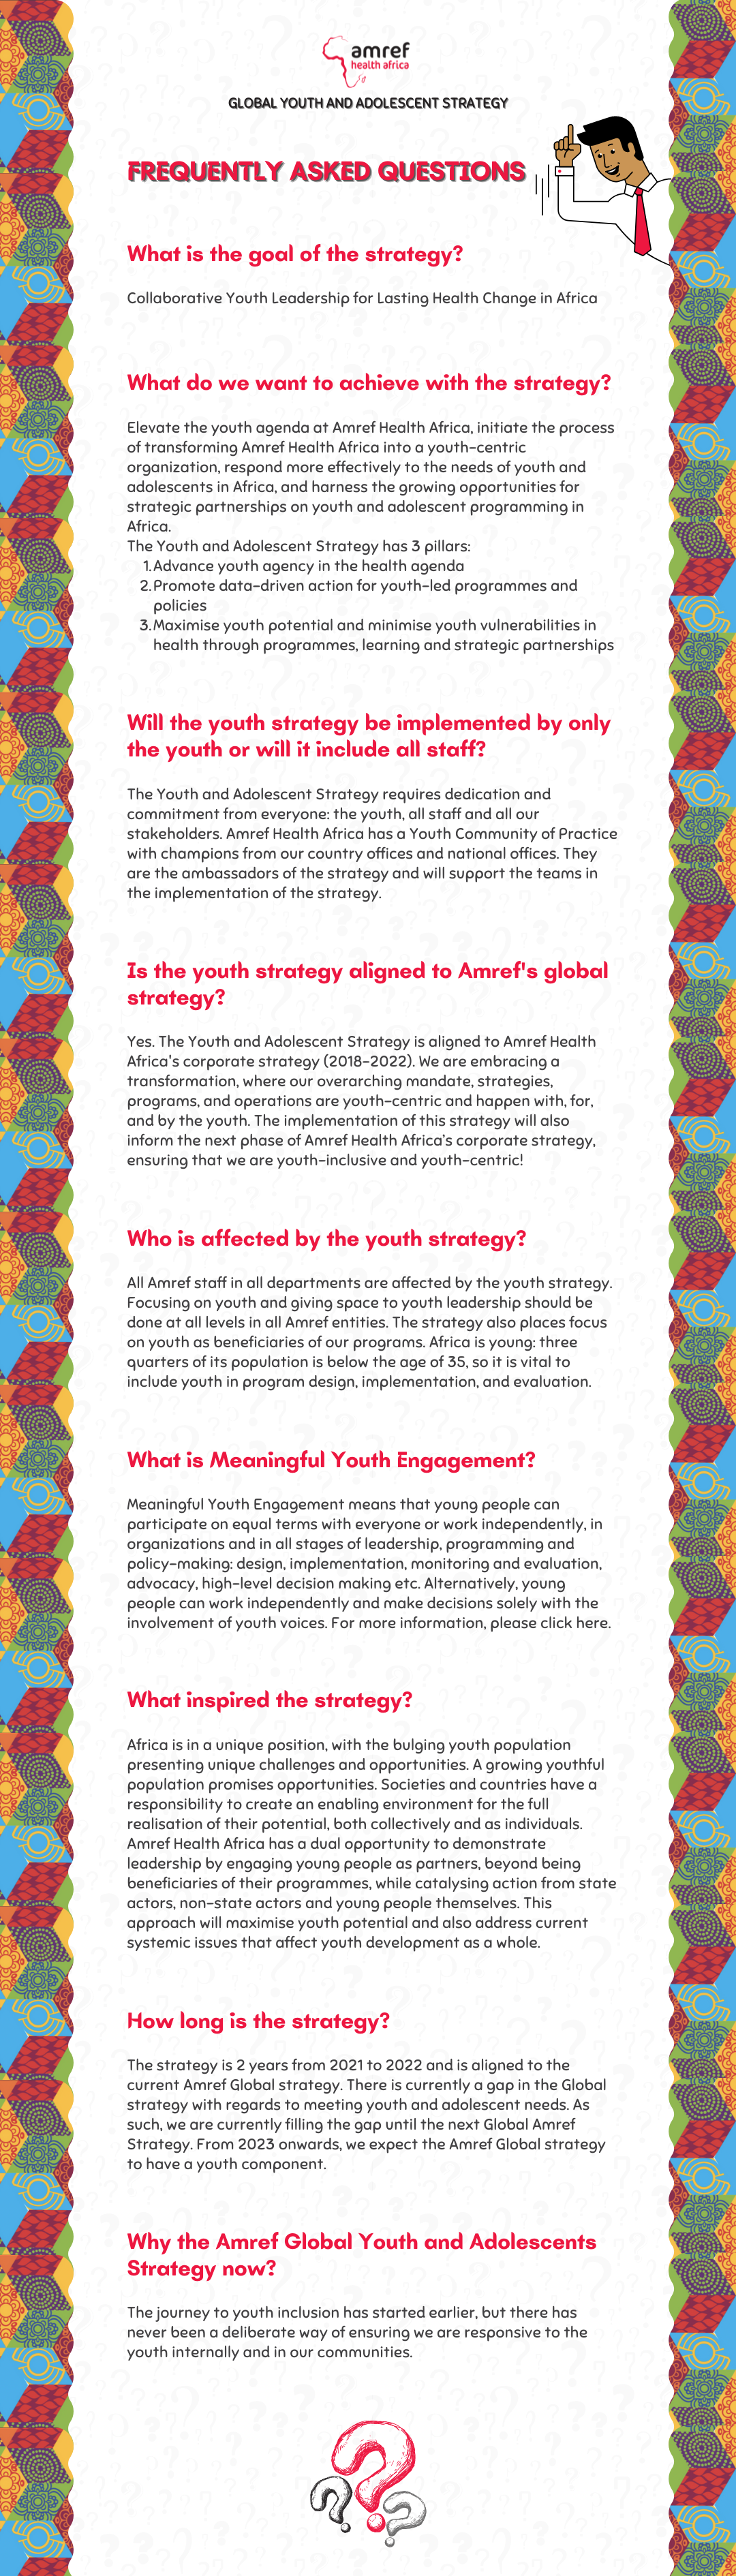 Let us launch the first ever Amref Global Youth and Adolescent Strategy (2021-2022) TOGETHER.